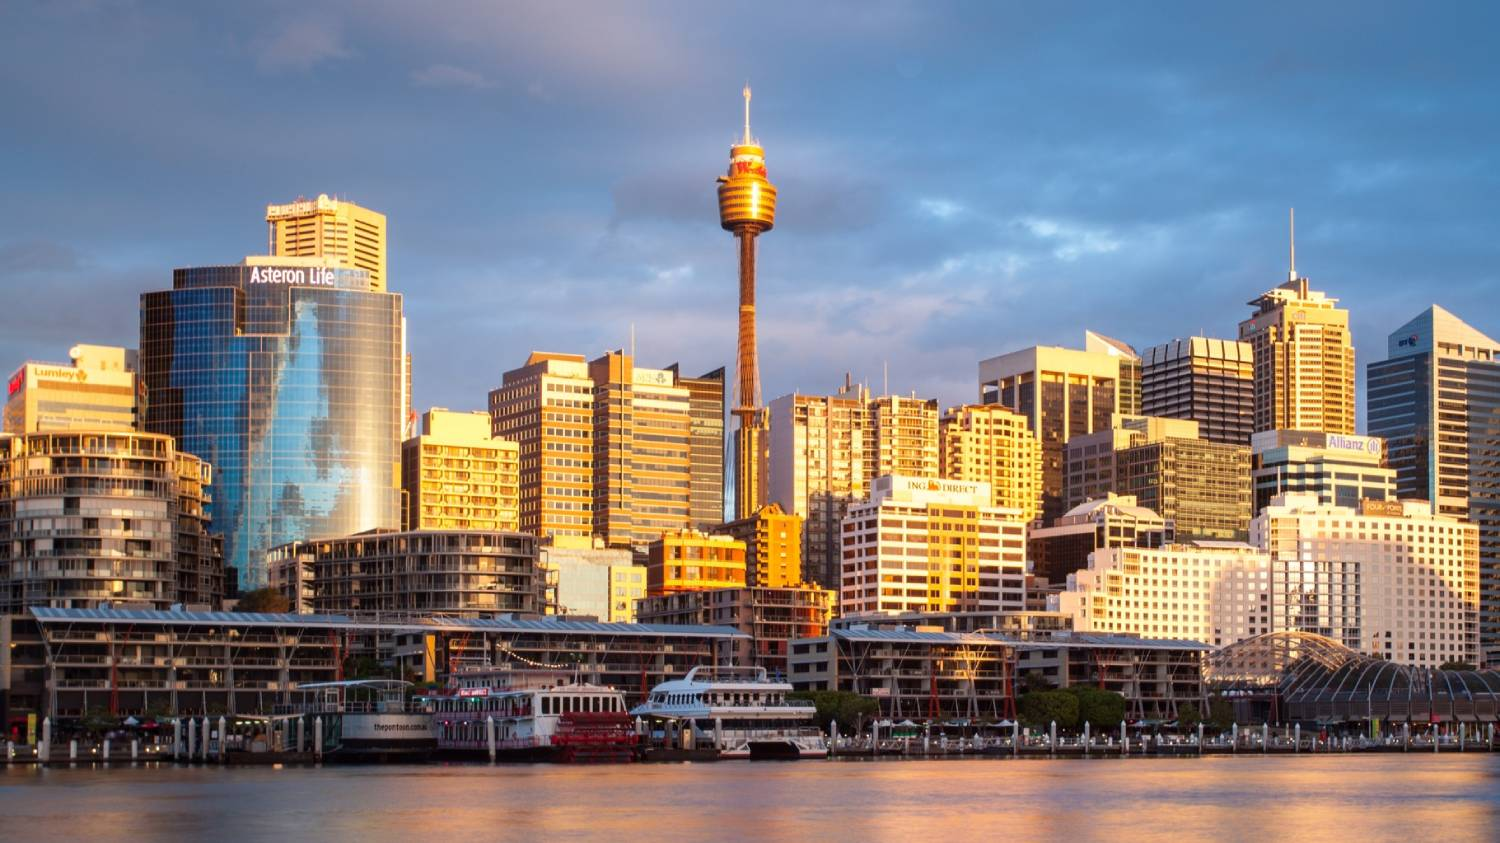 Sydney Tower Eye - Things To Do In Sydney